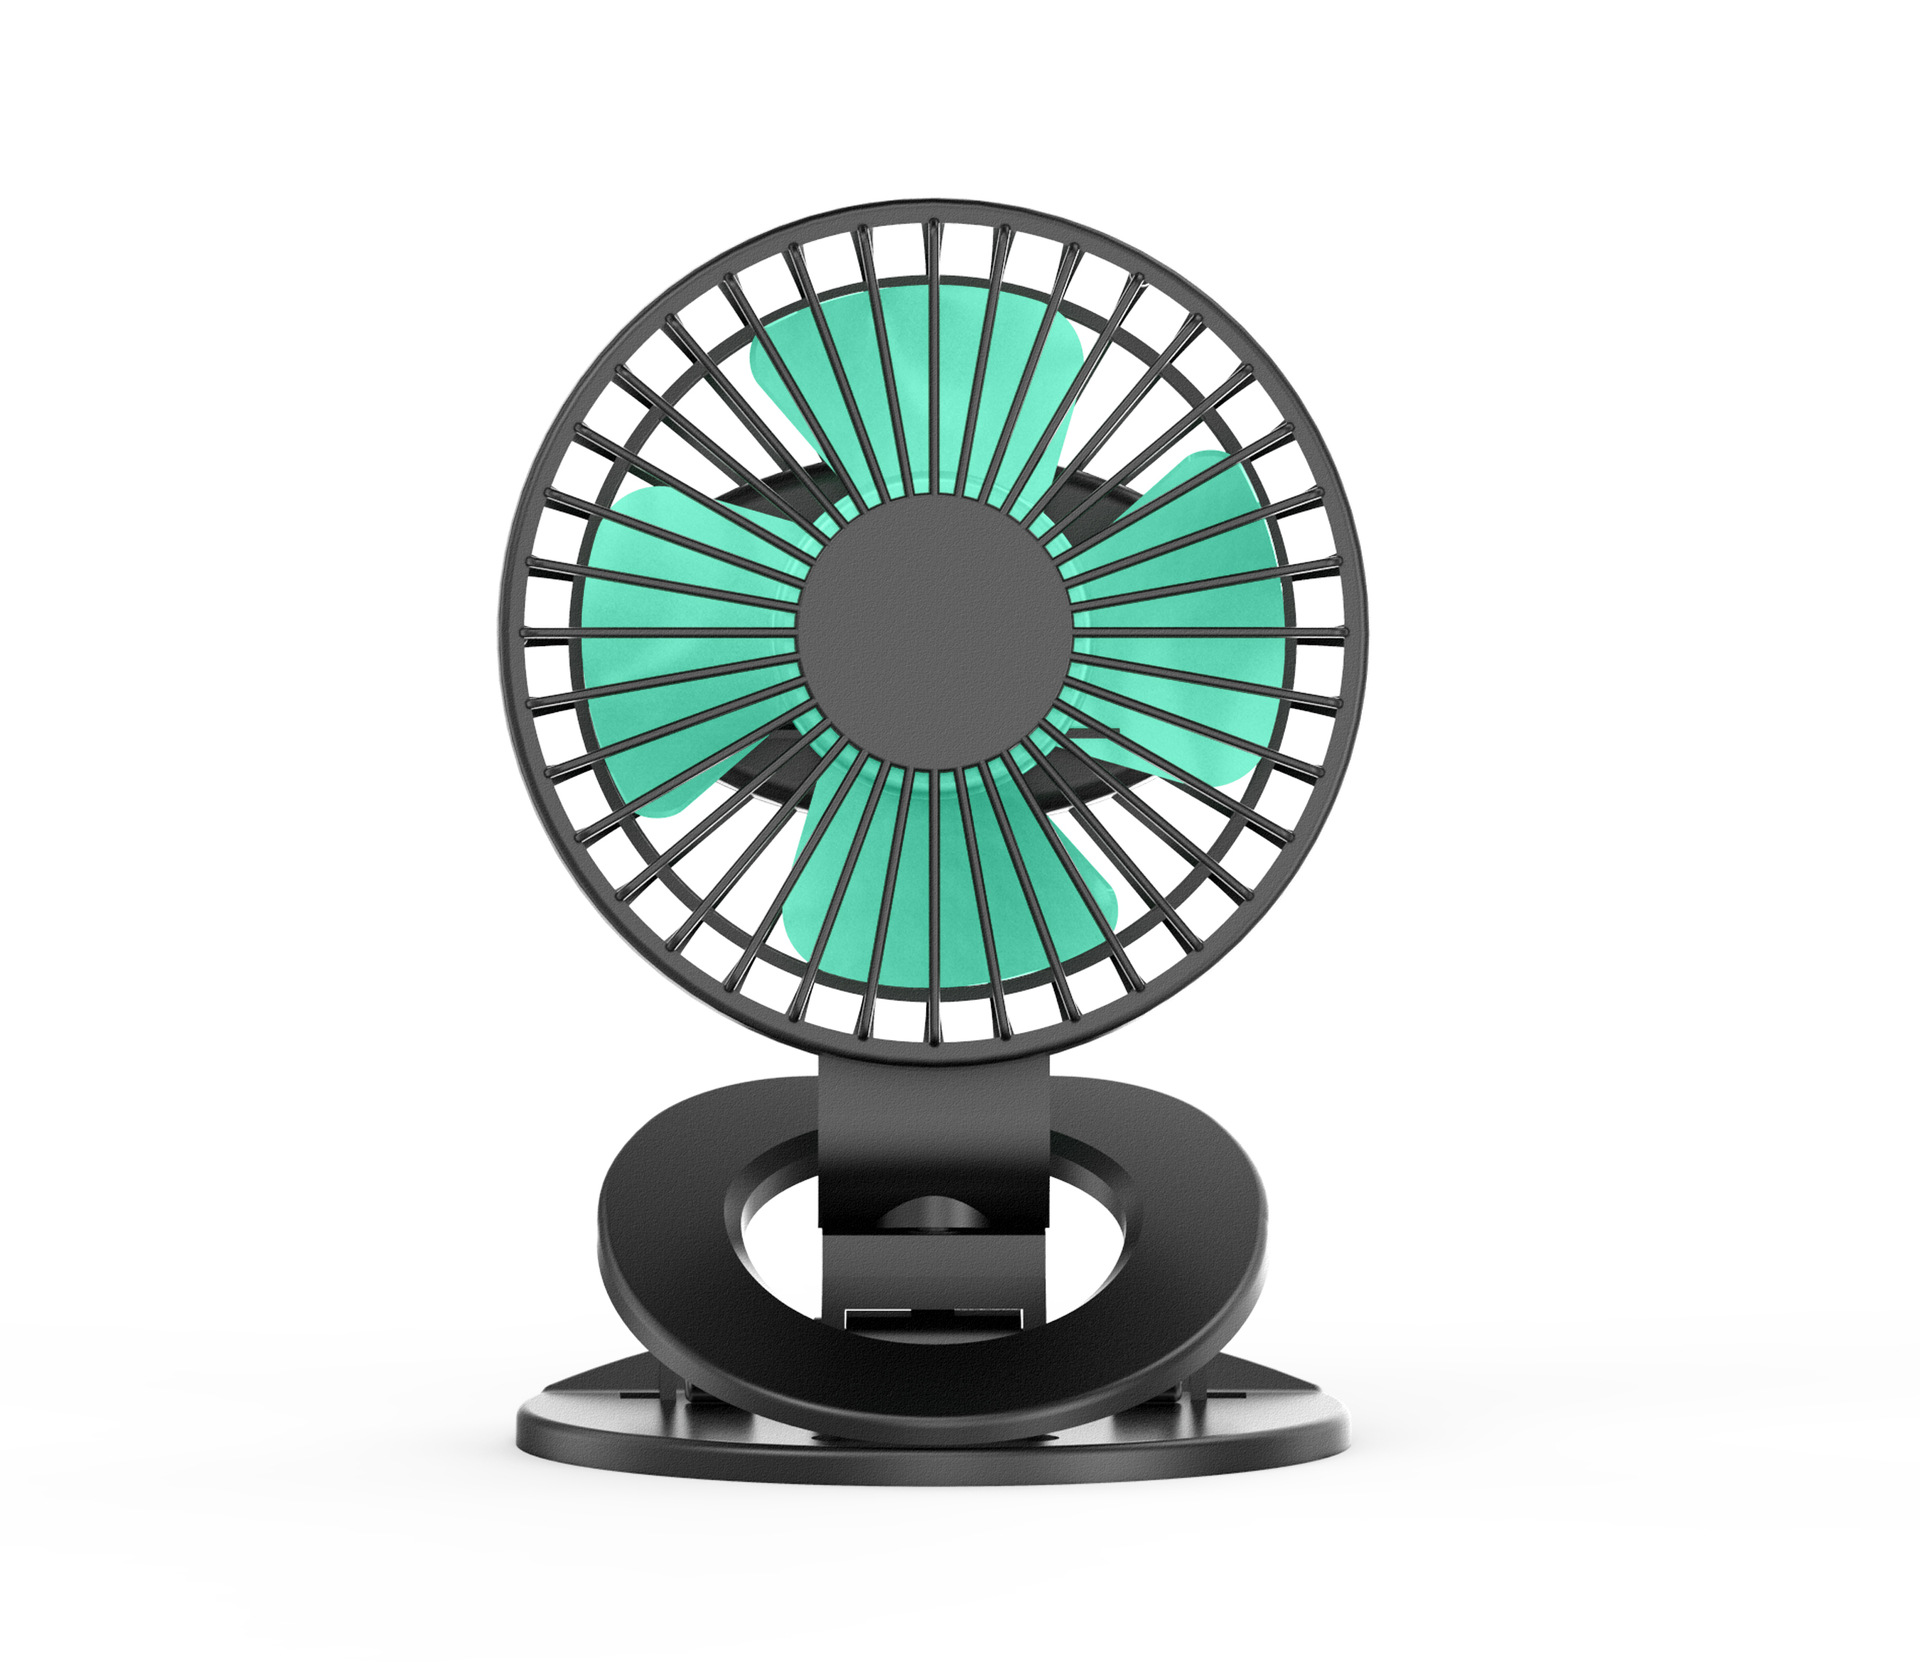 Hot Sale Usb Handheld Mini Fan Silent Air Cooler Portable Desk Fans For Home